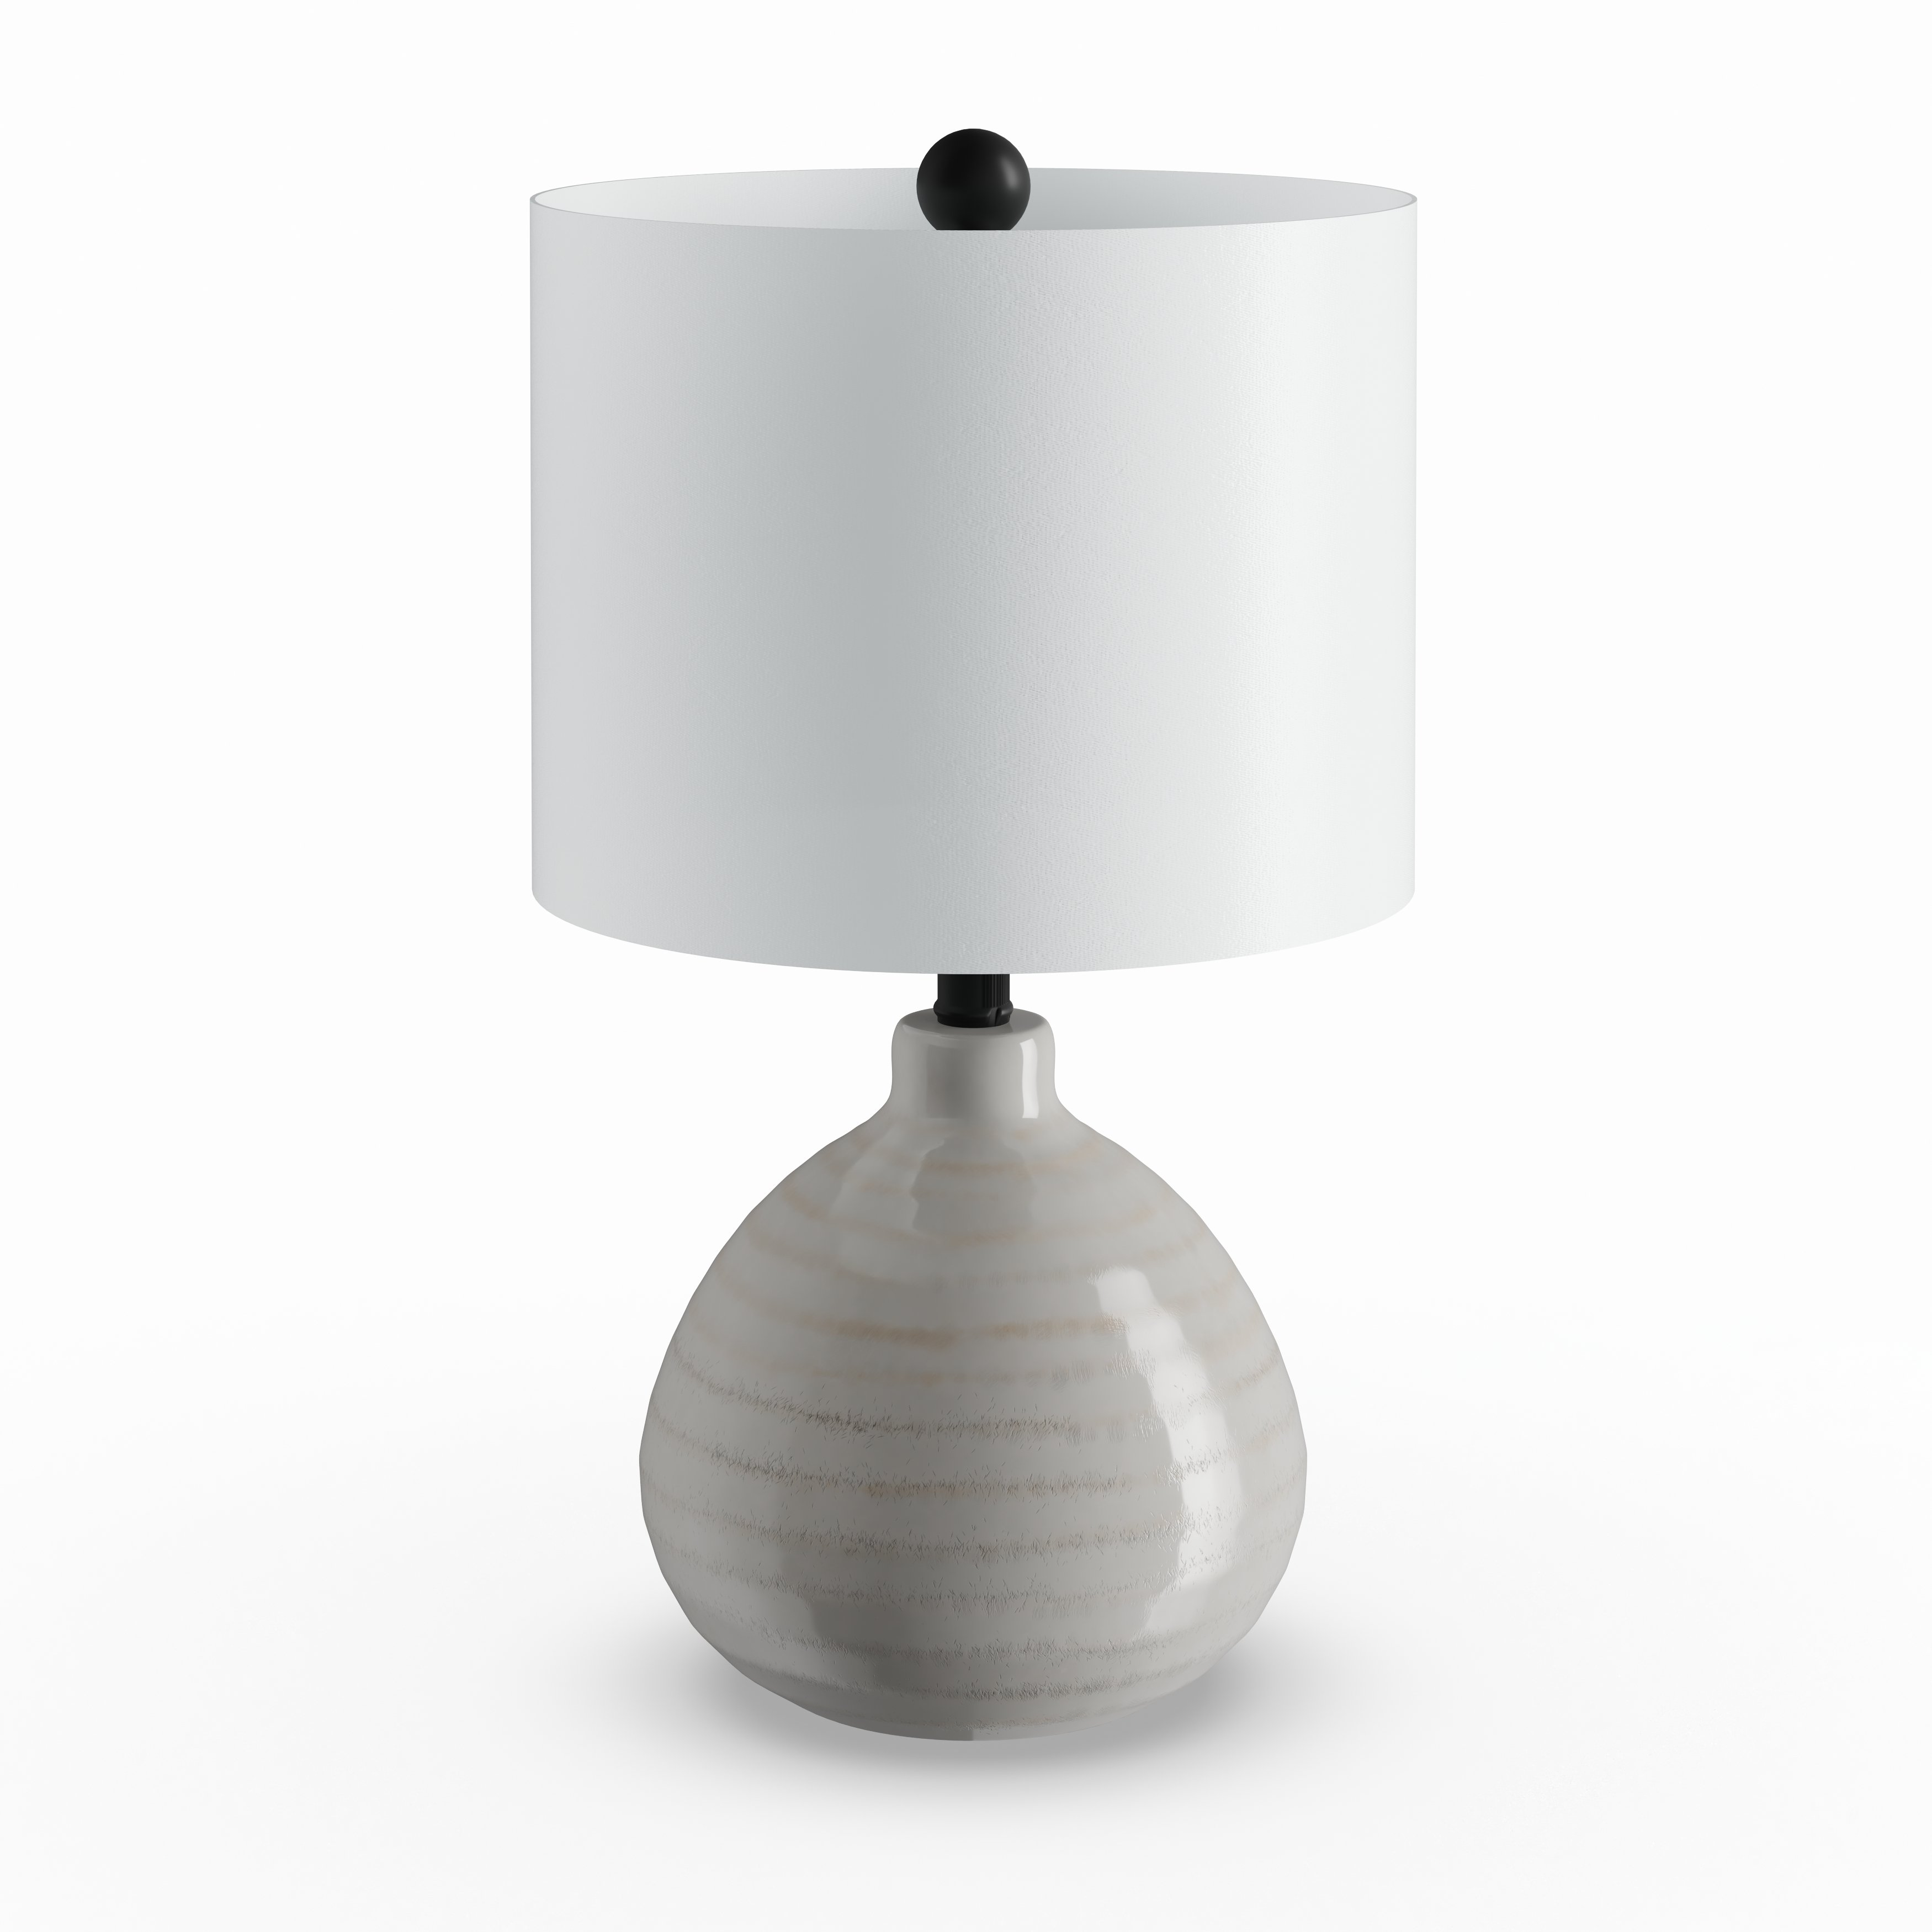 carson carrington helsinge ceramic accent table lamp grey havenside home englehardt white free shipping today deck chairs round tablecloth low outdoor target floor rugs seaside